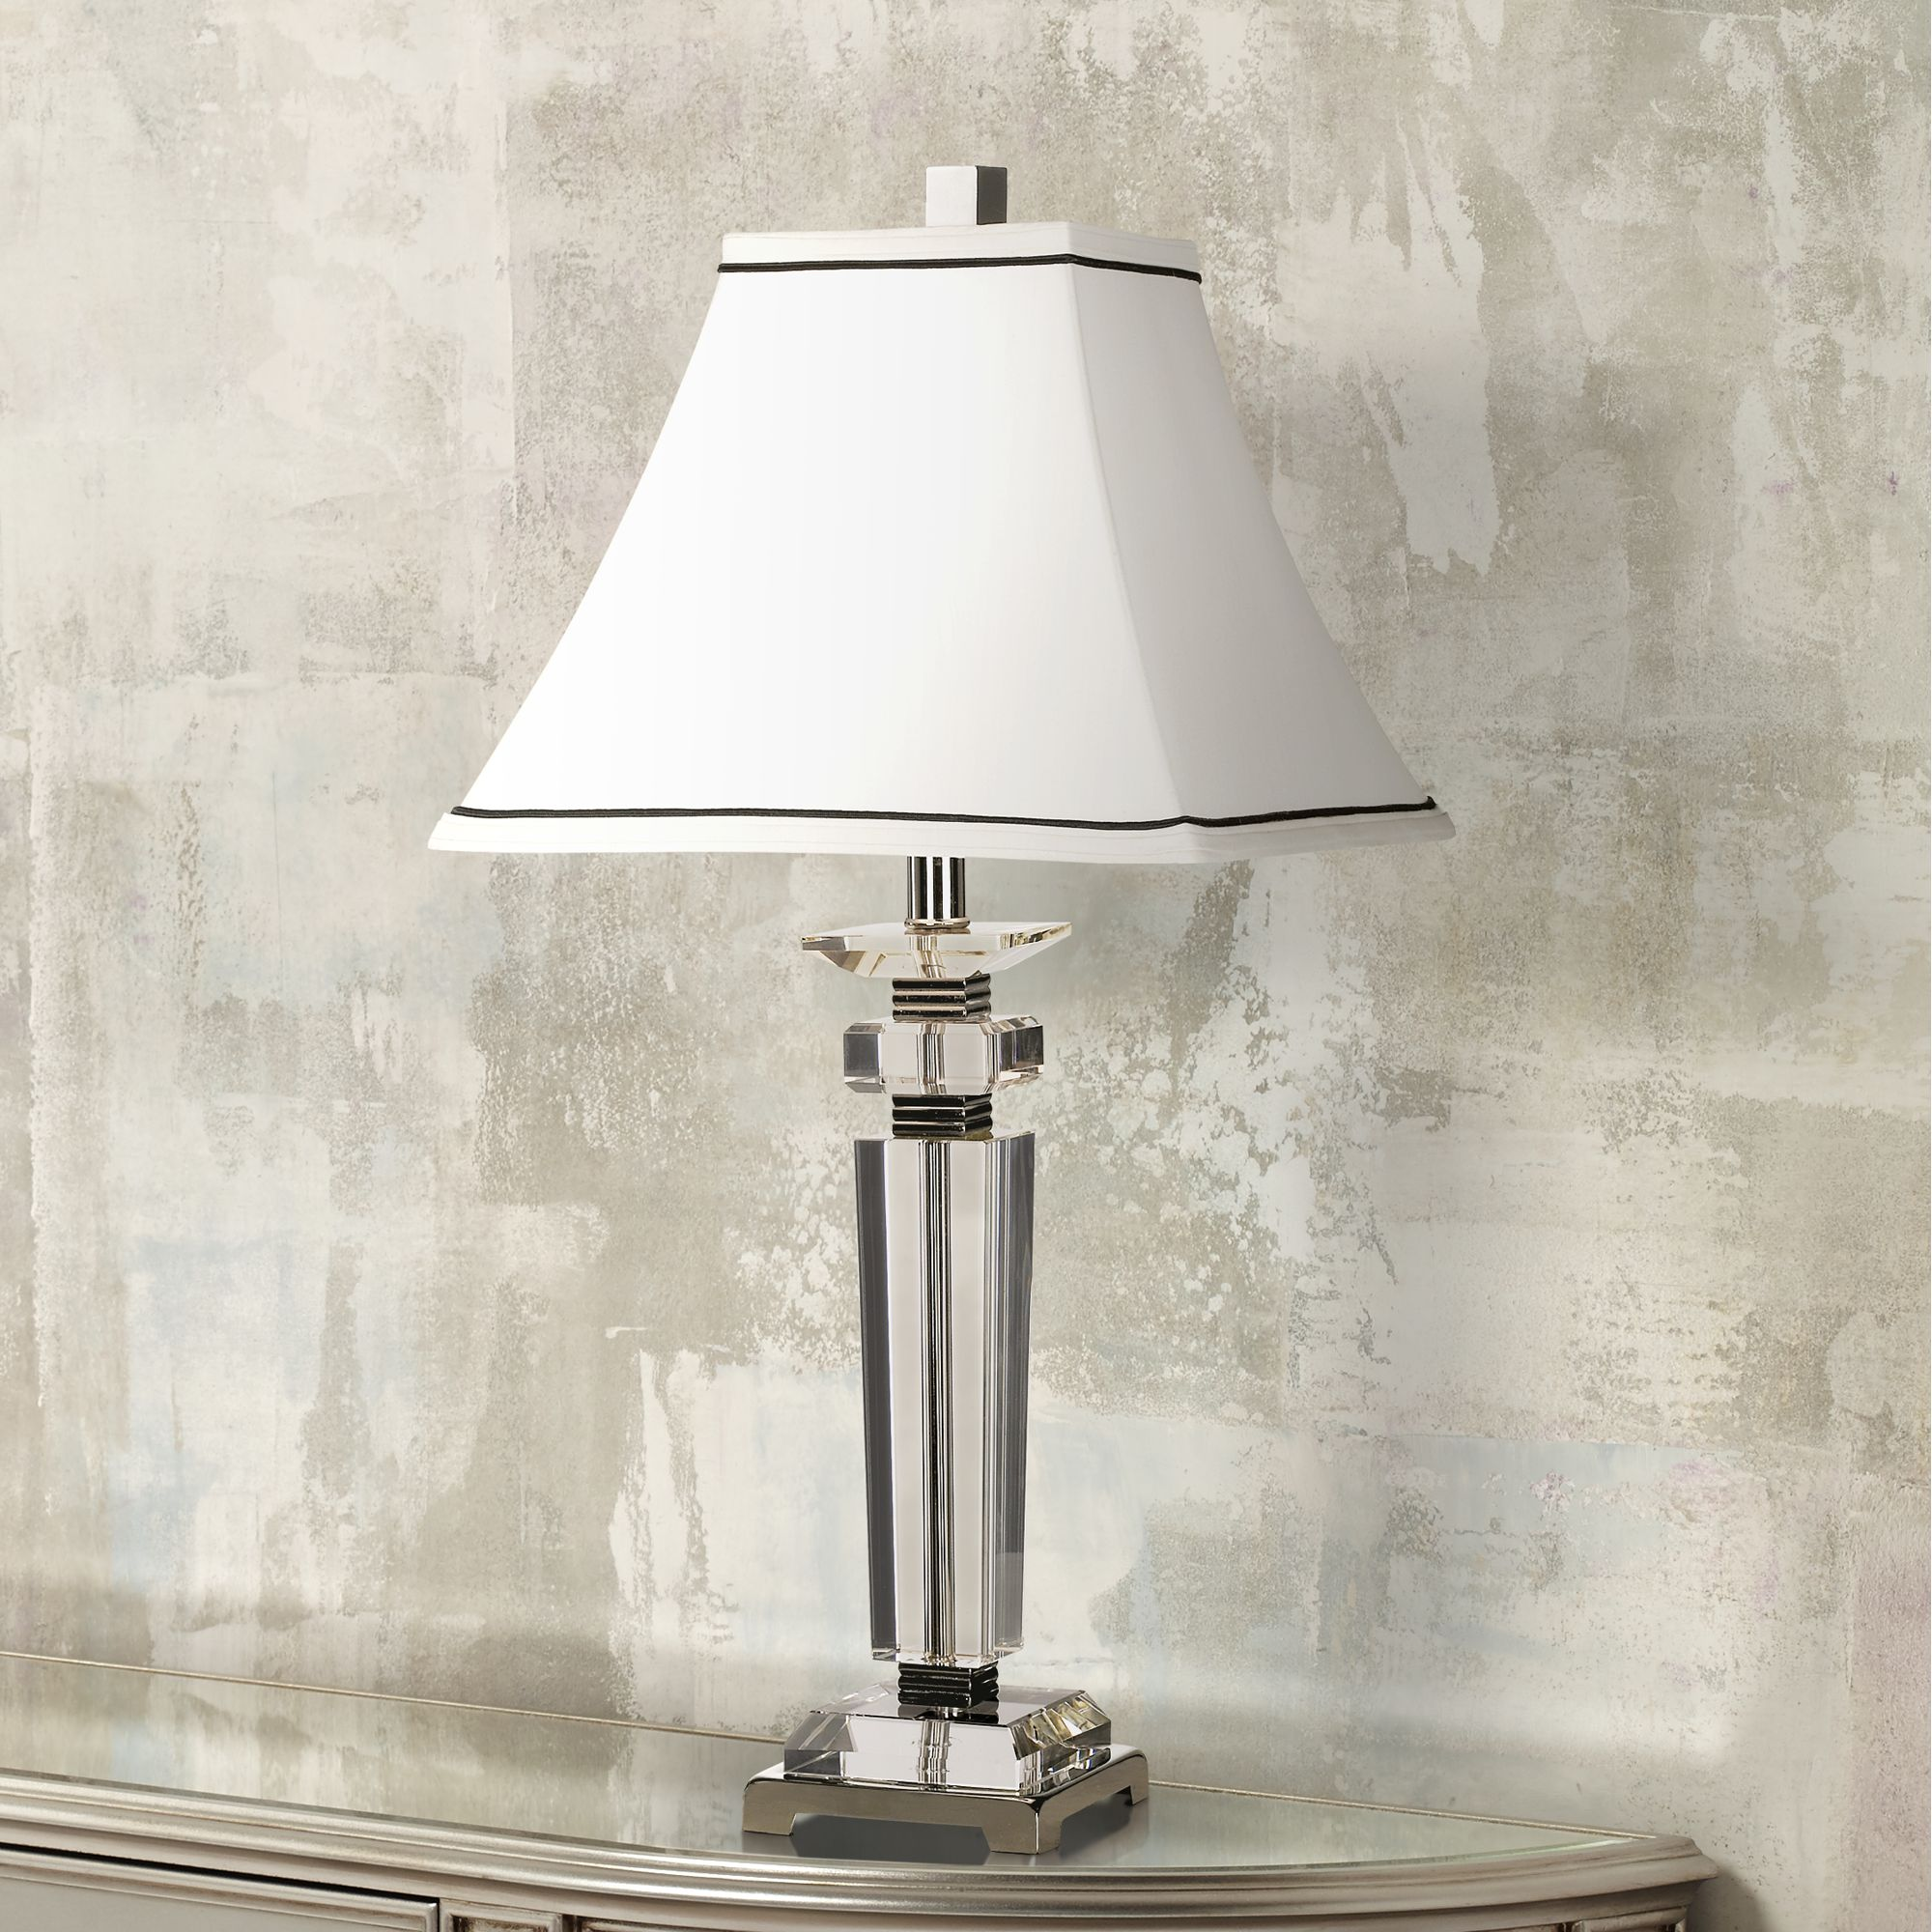 Vienna Full Spectrum Modern Table Lamp Crystal Column Flared Bell White Shade for Living Room Family Bedroom Bedside Nightstand